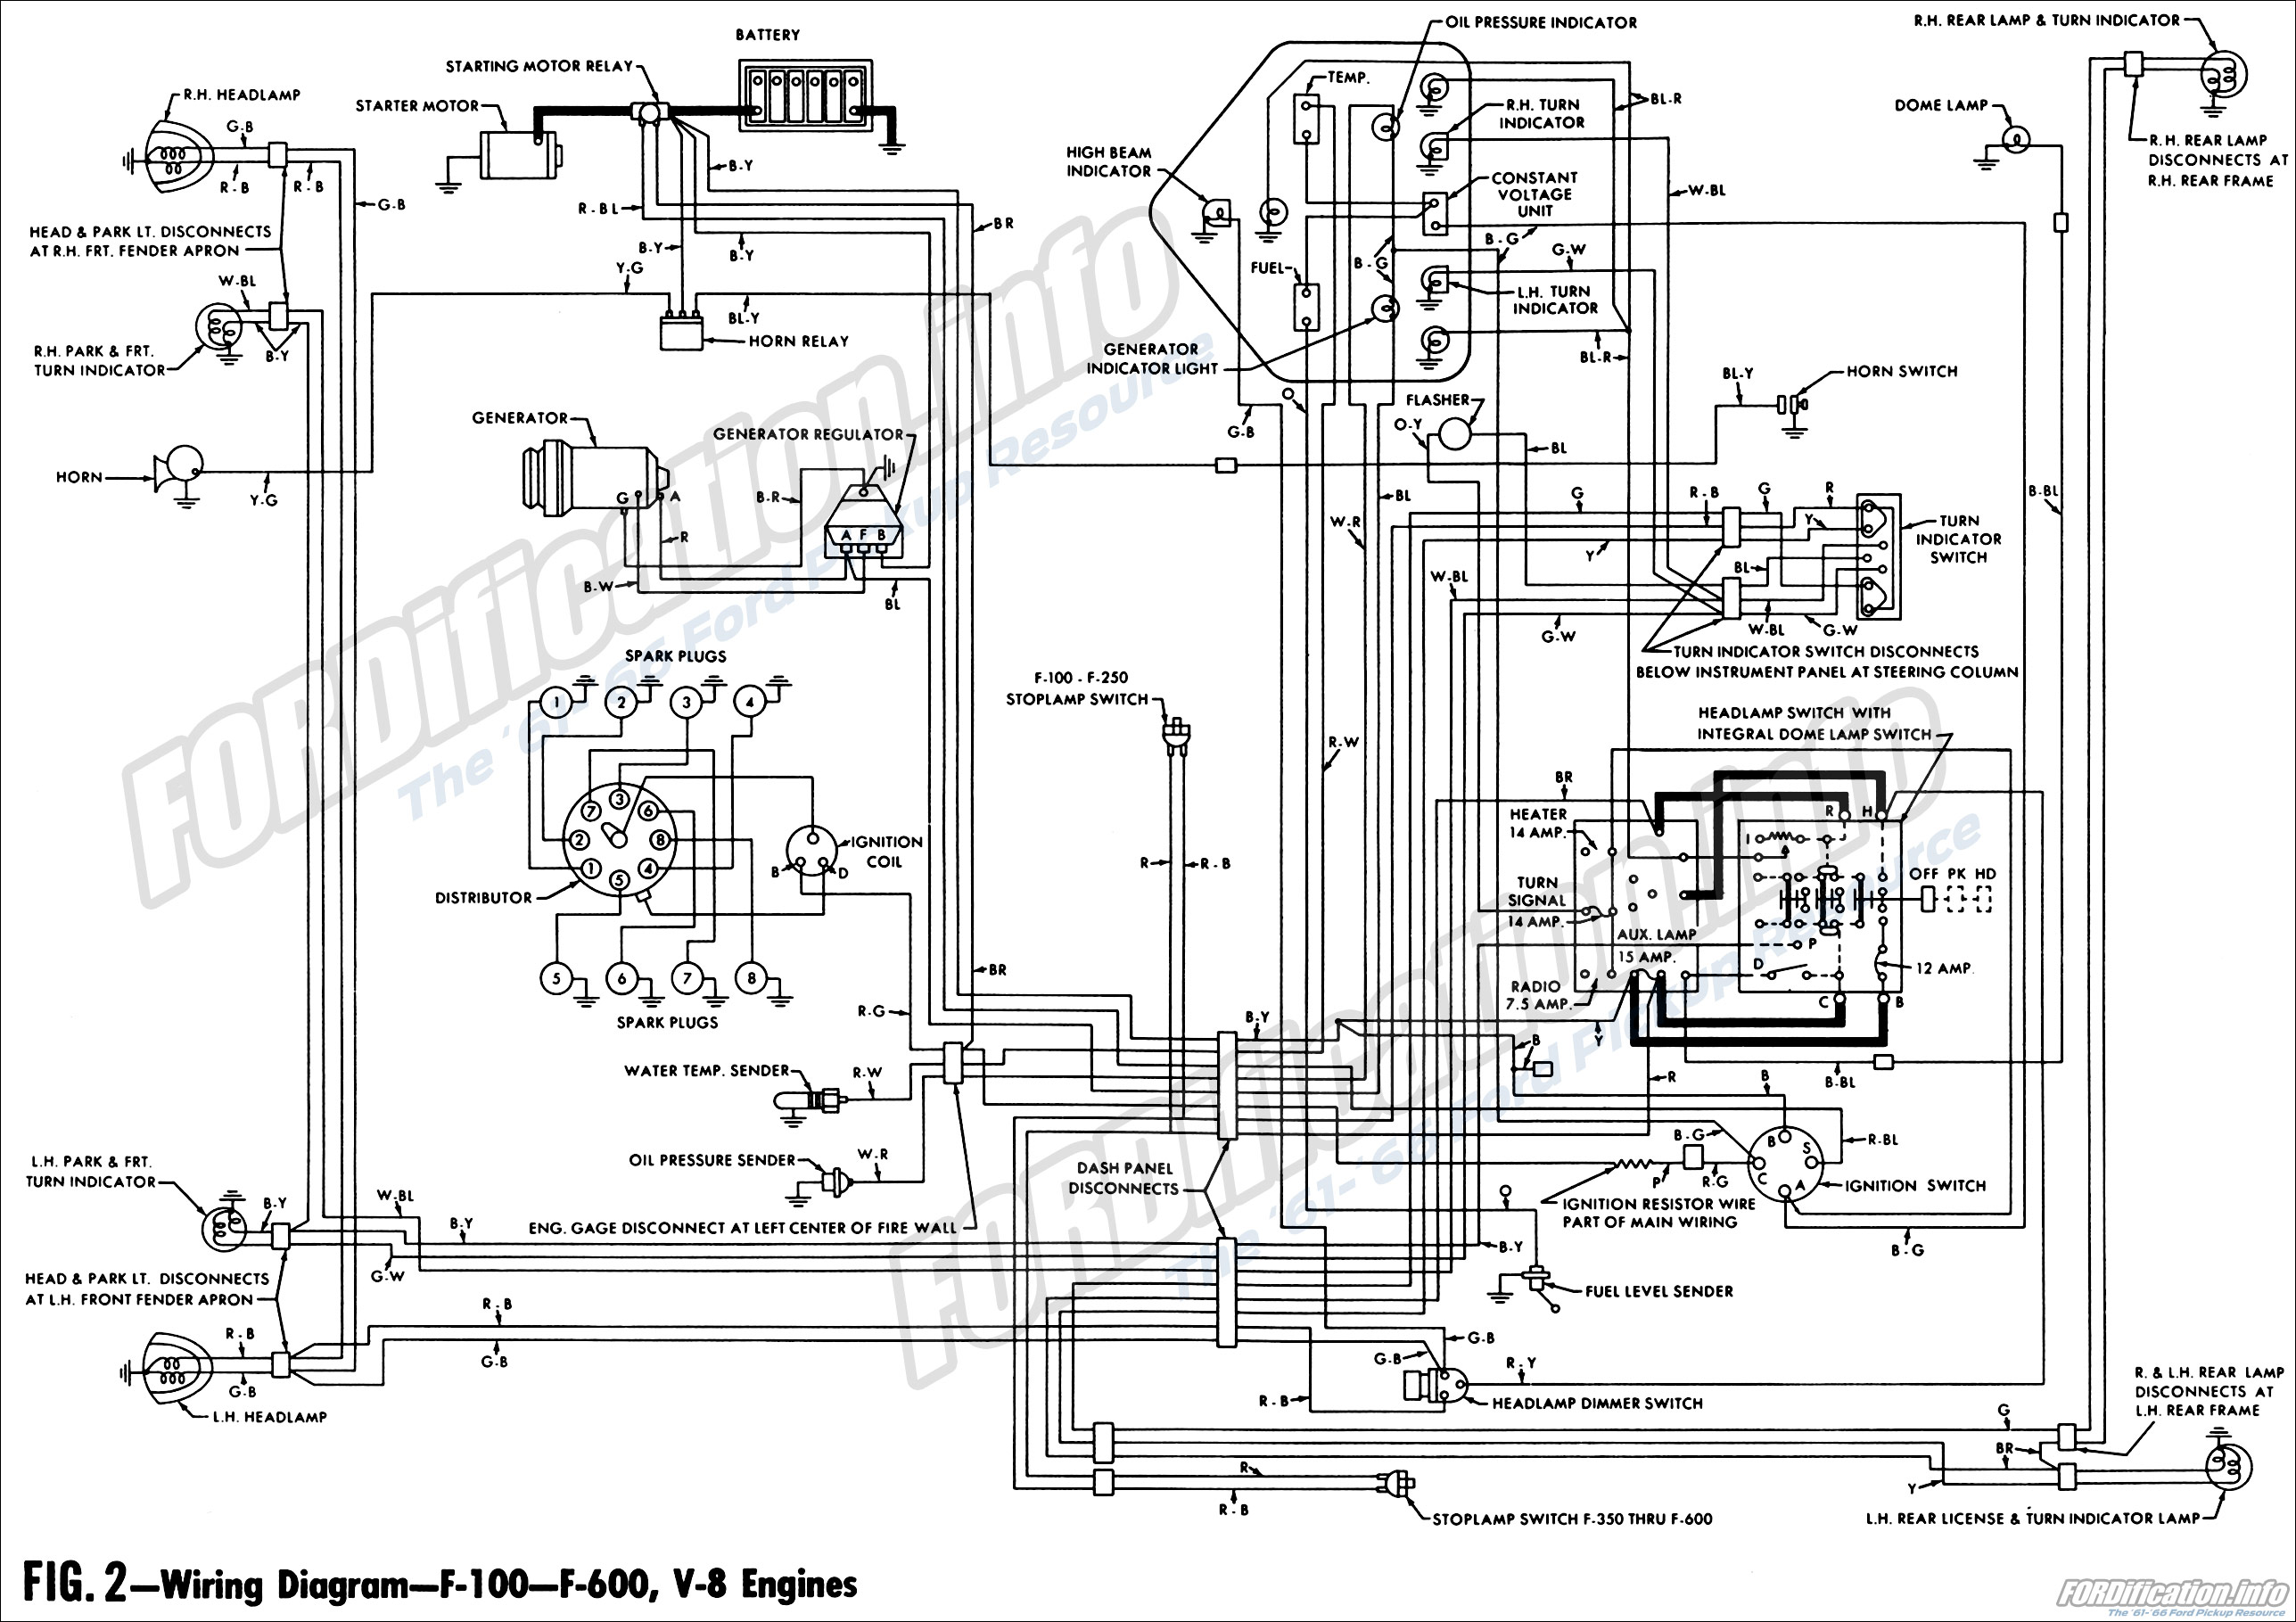 Ford F800 Wiring Diagram Ford Wiring Diagram Images